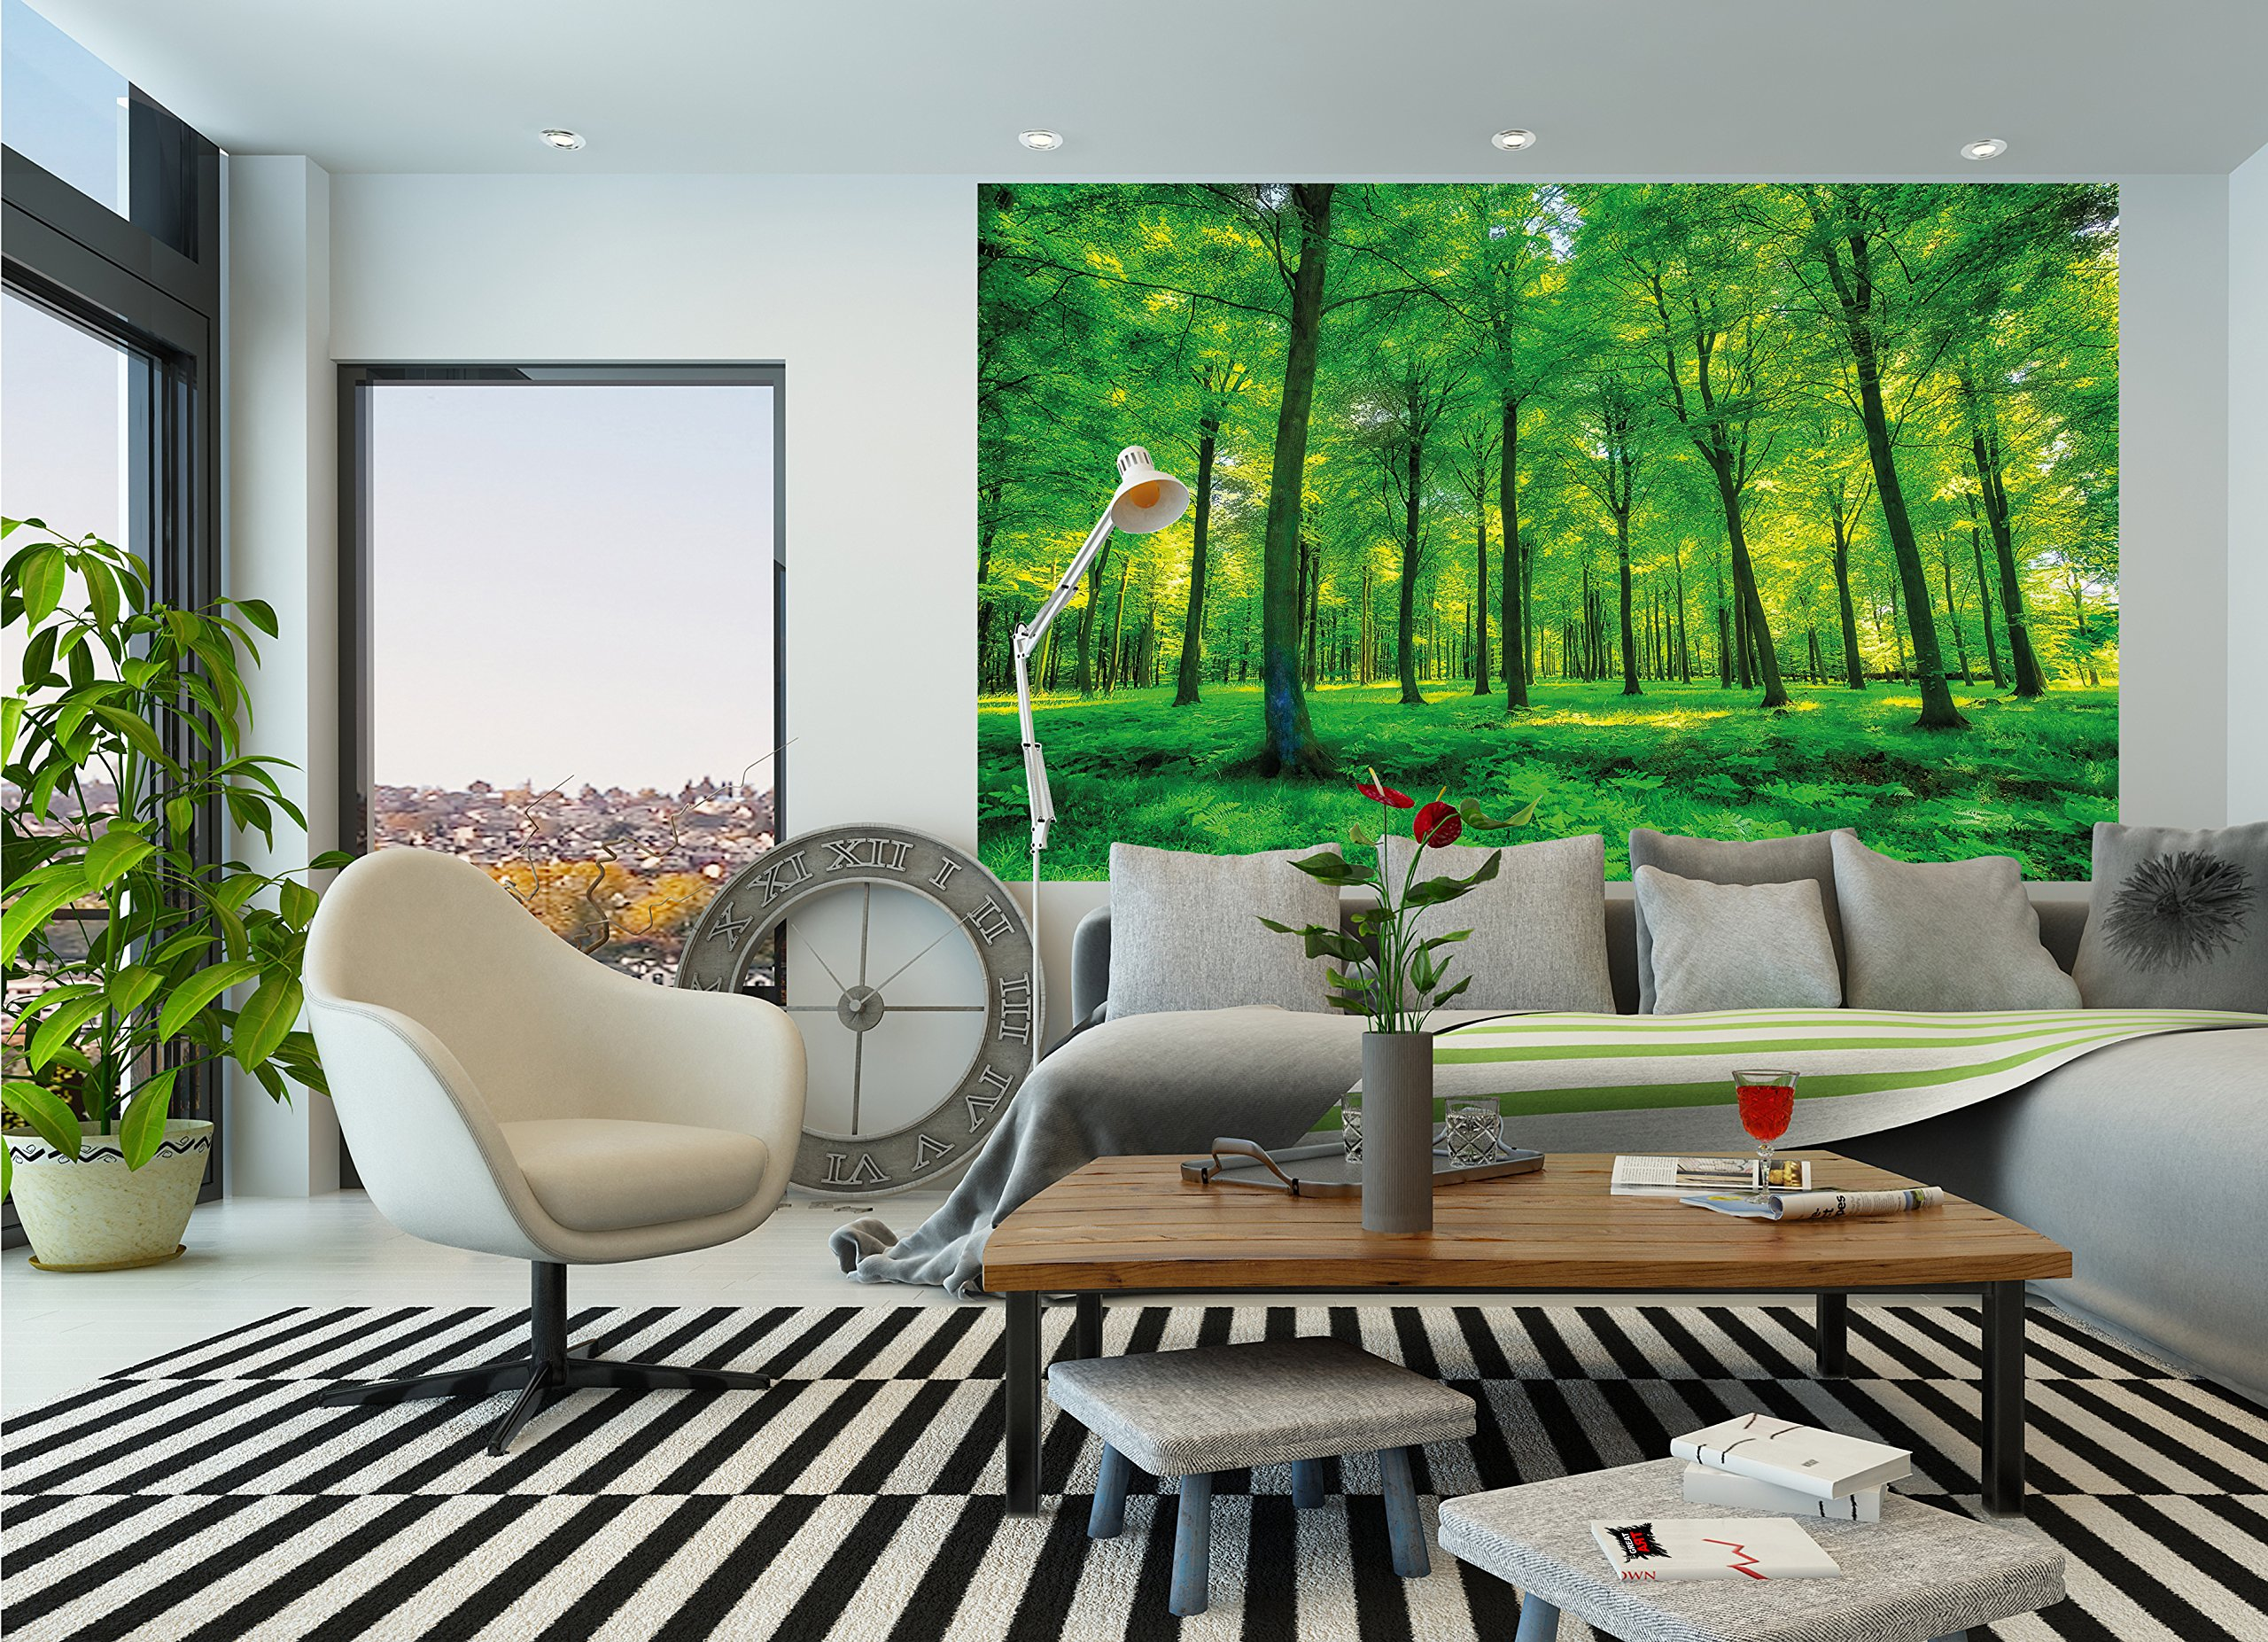 GREAT ART Wallpaper Trees Forest – Nature Wall Photo Decoration Natural Landscape Poster Summer Relax Sun Plants Flora Mural (82.7x55 Inch) by Great Art (Image #9)